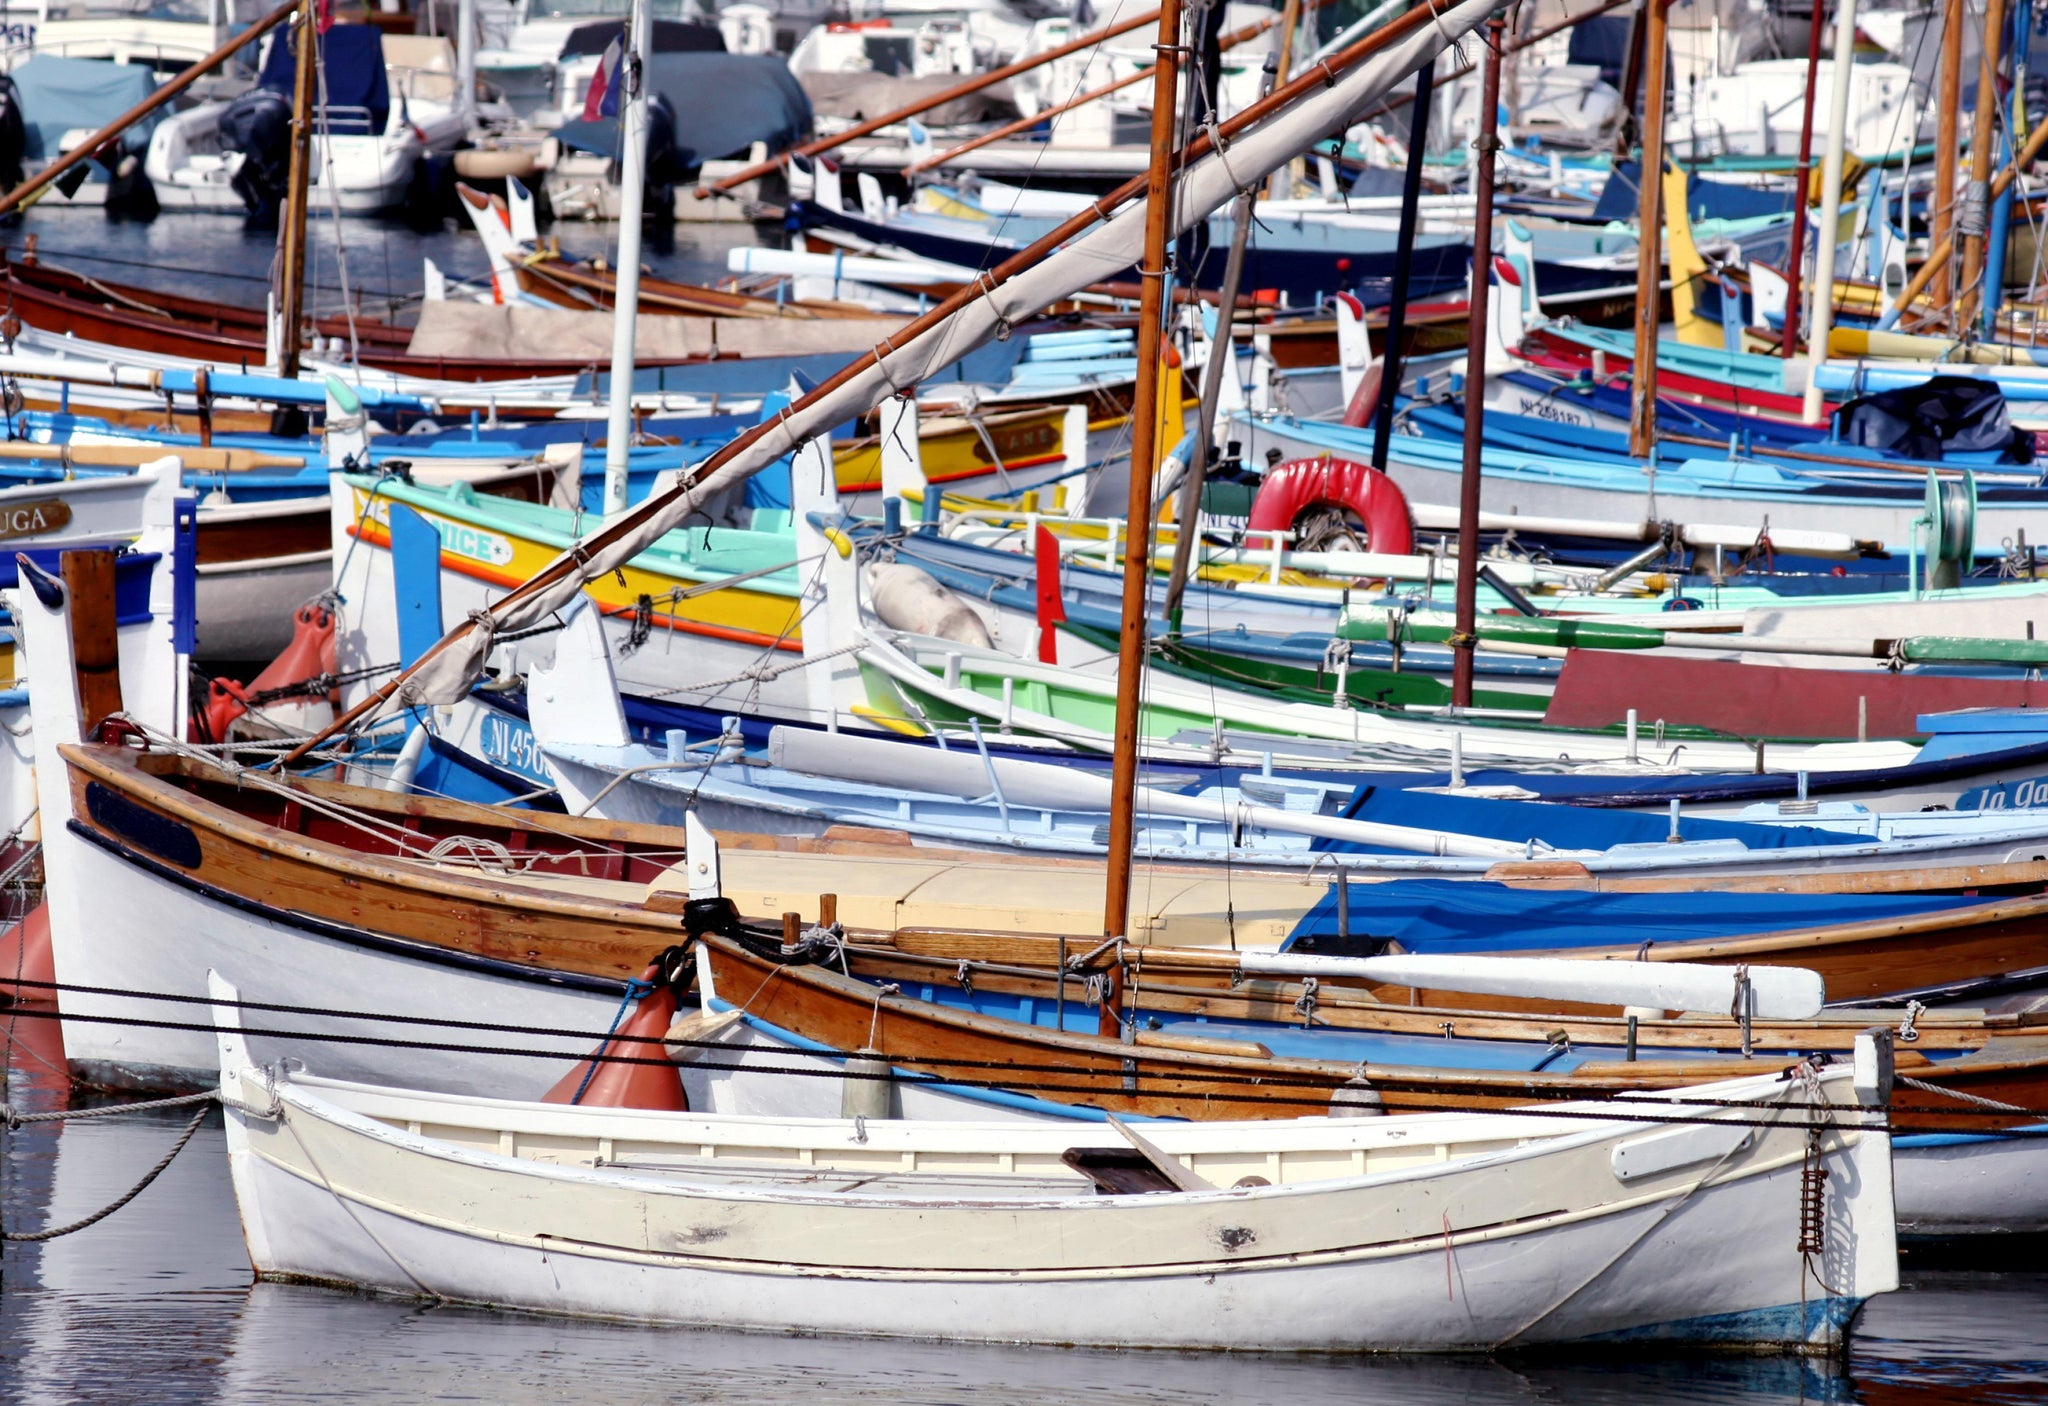 Colorful Boats, France